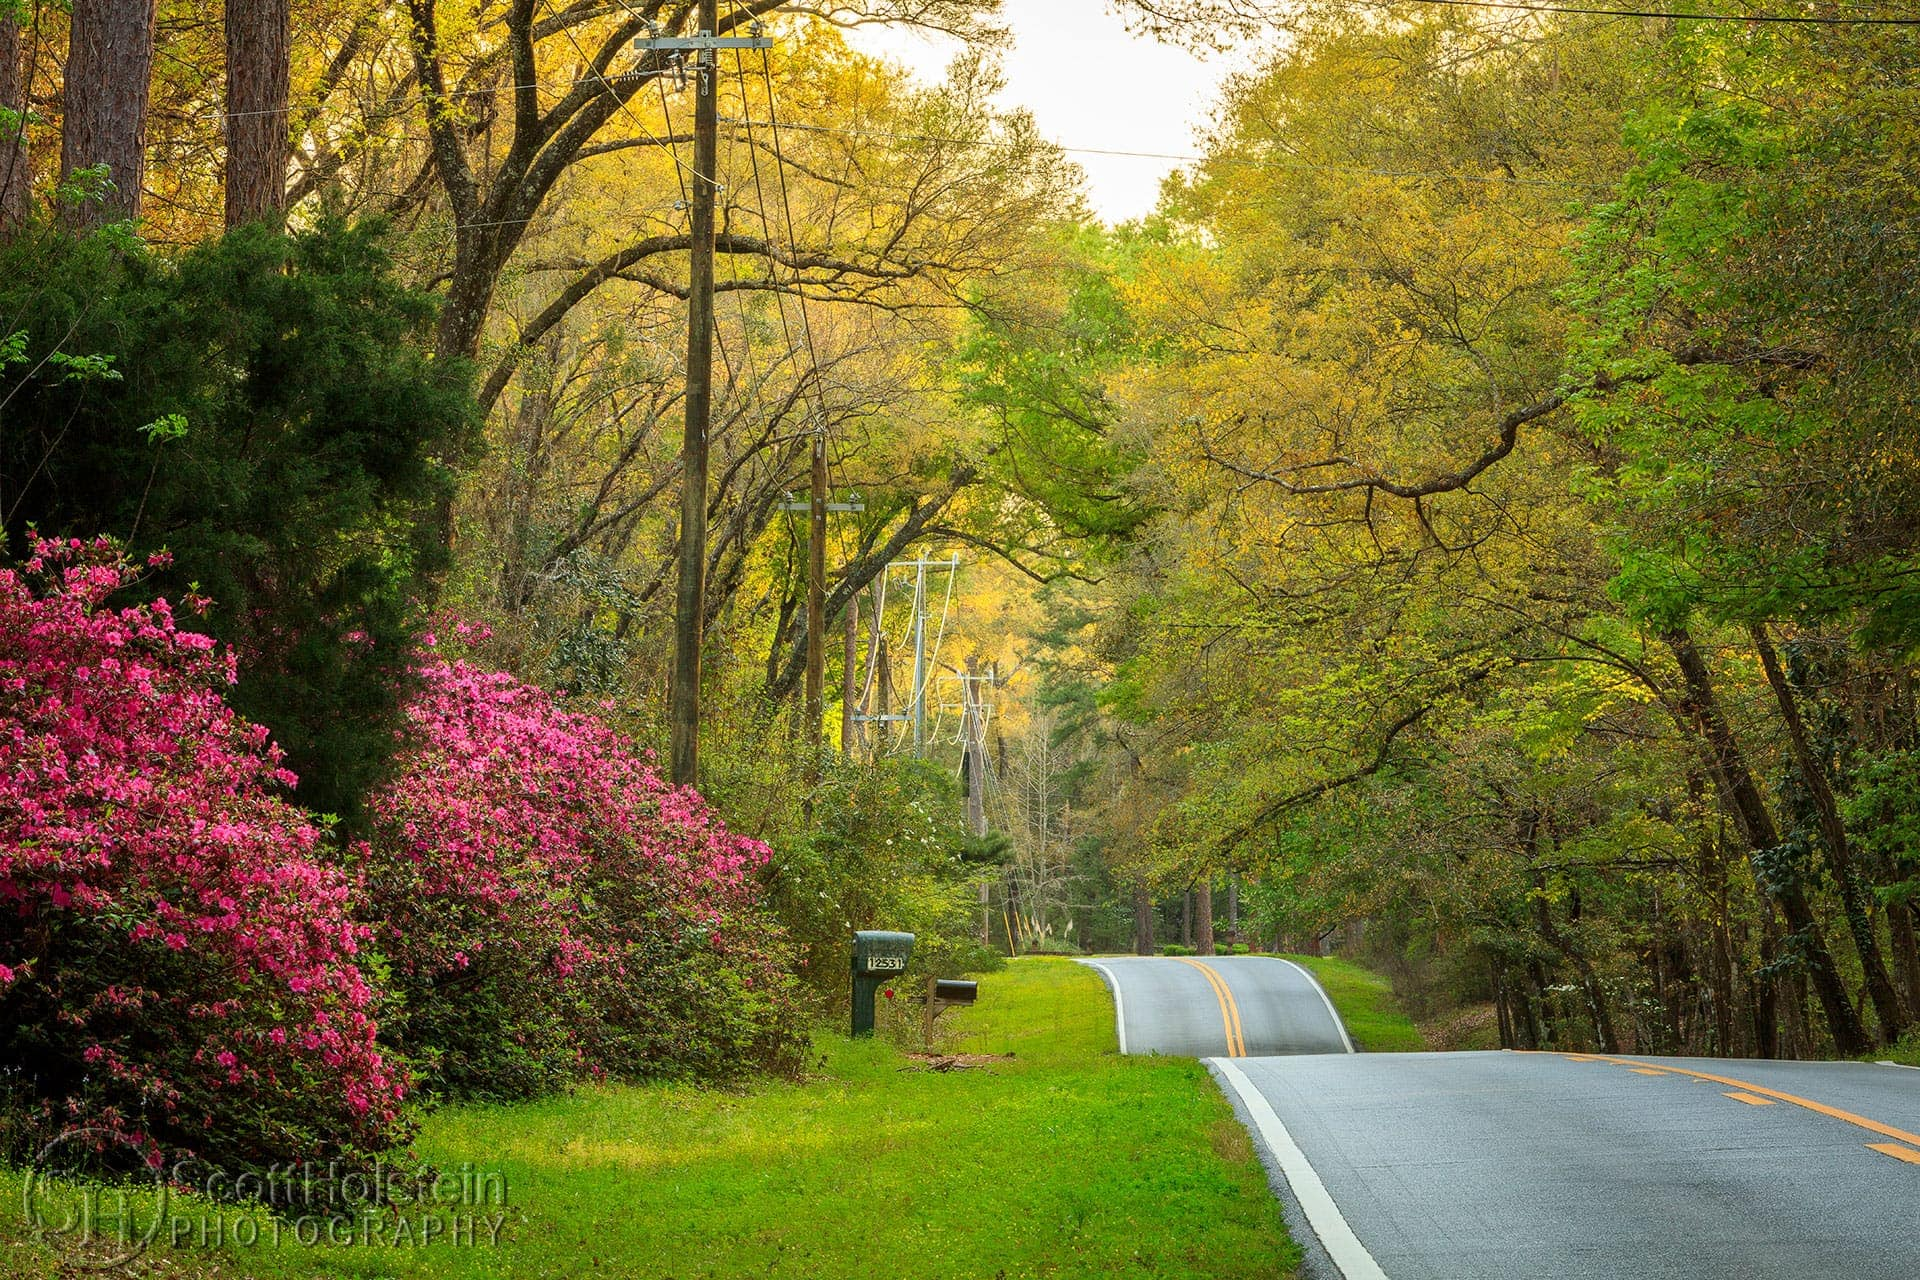 Large, blooming azaleas decorate North Meridian Road, one of the Tallahassee canopy roads.